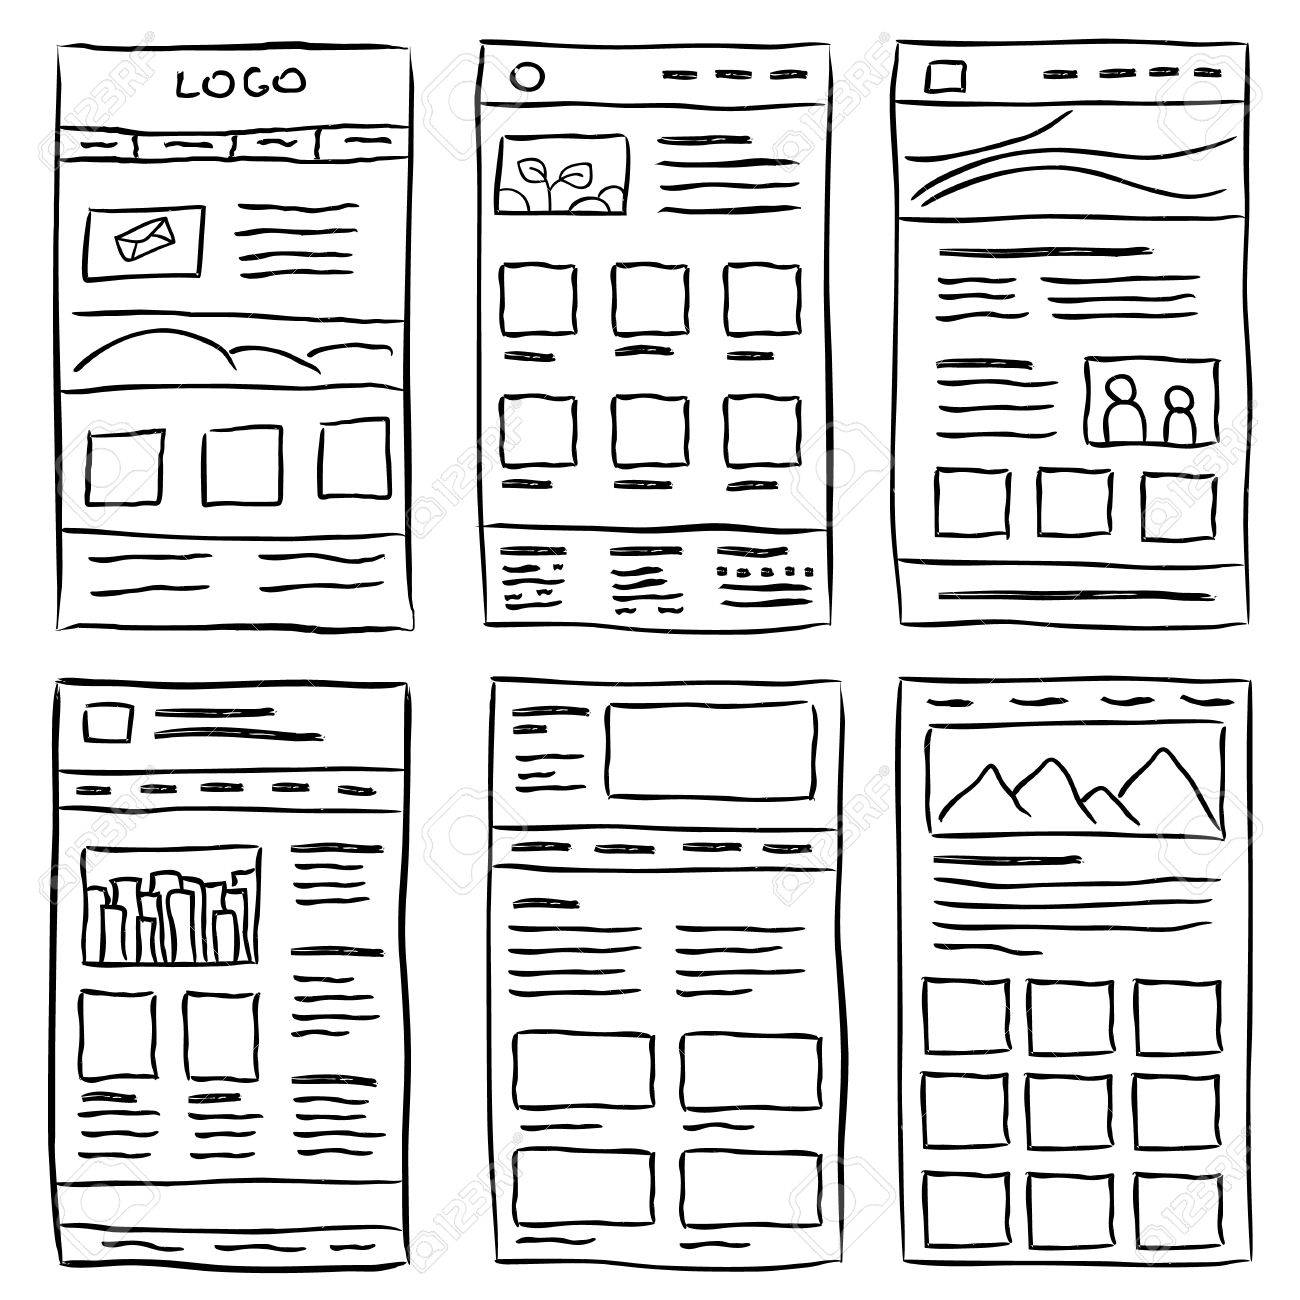 Hand drawn website layouts. doodle style design - 53926876